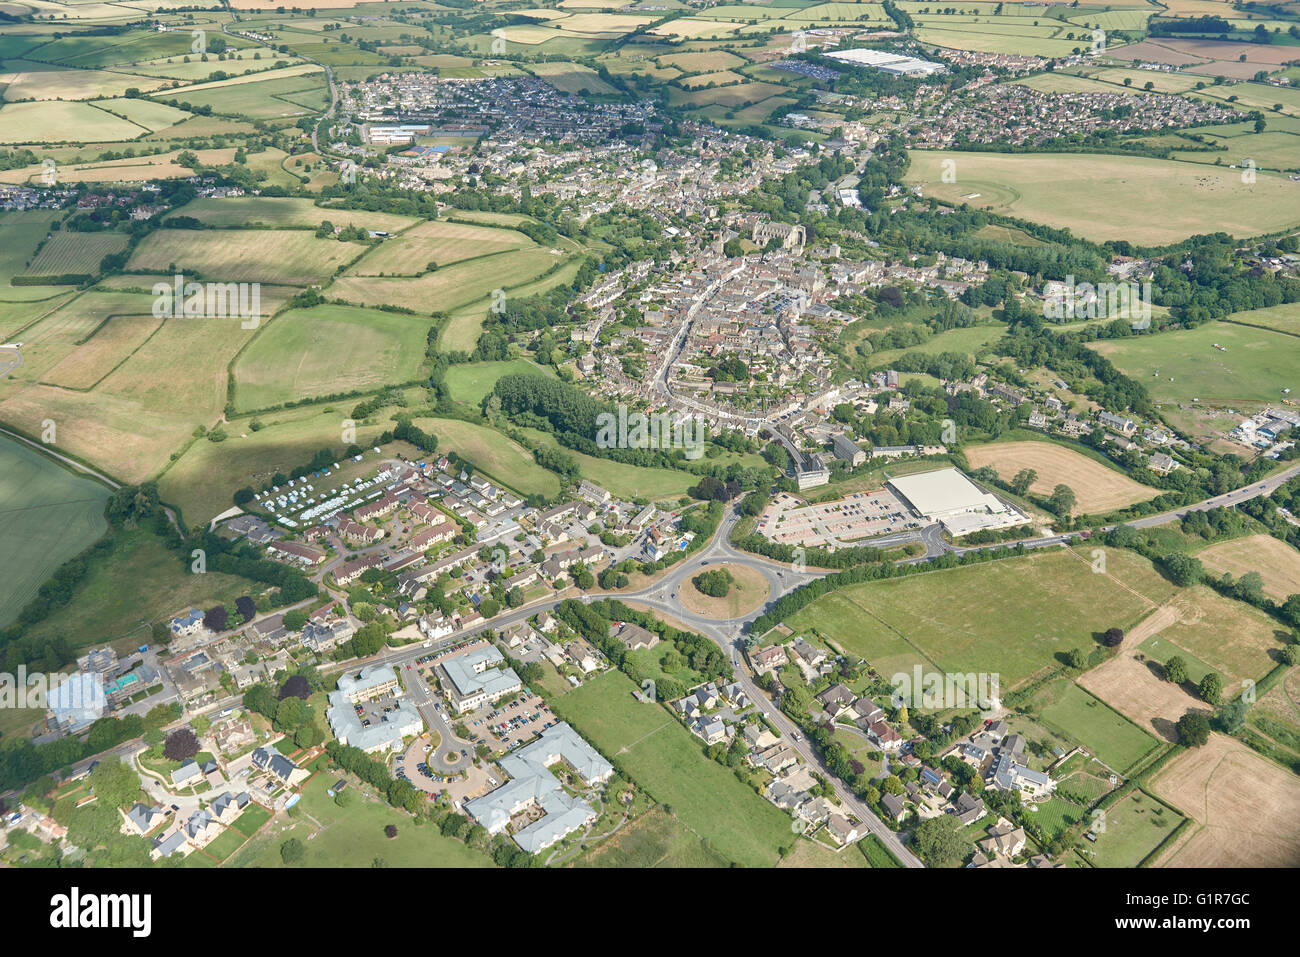 A wide aerial view showing the whole of the market town of Malmesbury in Wiltshire - Stock Image